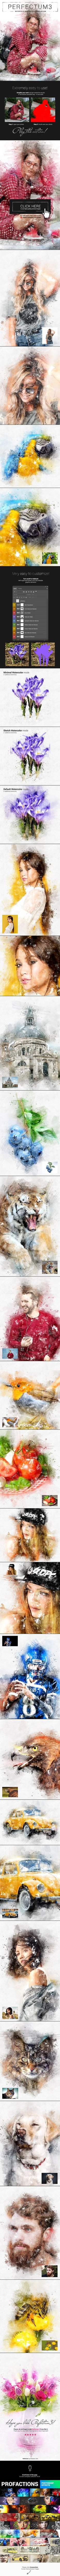 Perfectum 3 - #Watercolor Master #Photoshop #Action - Photo Effects Actions